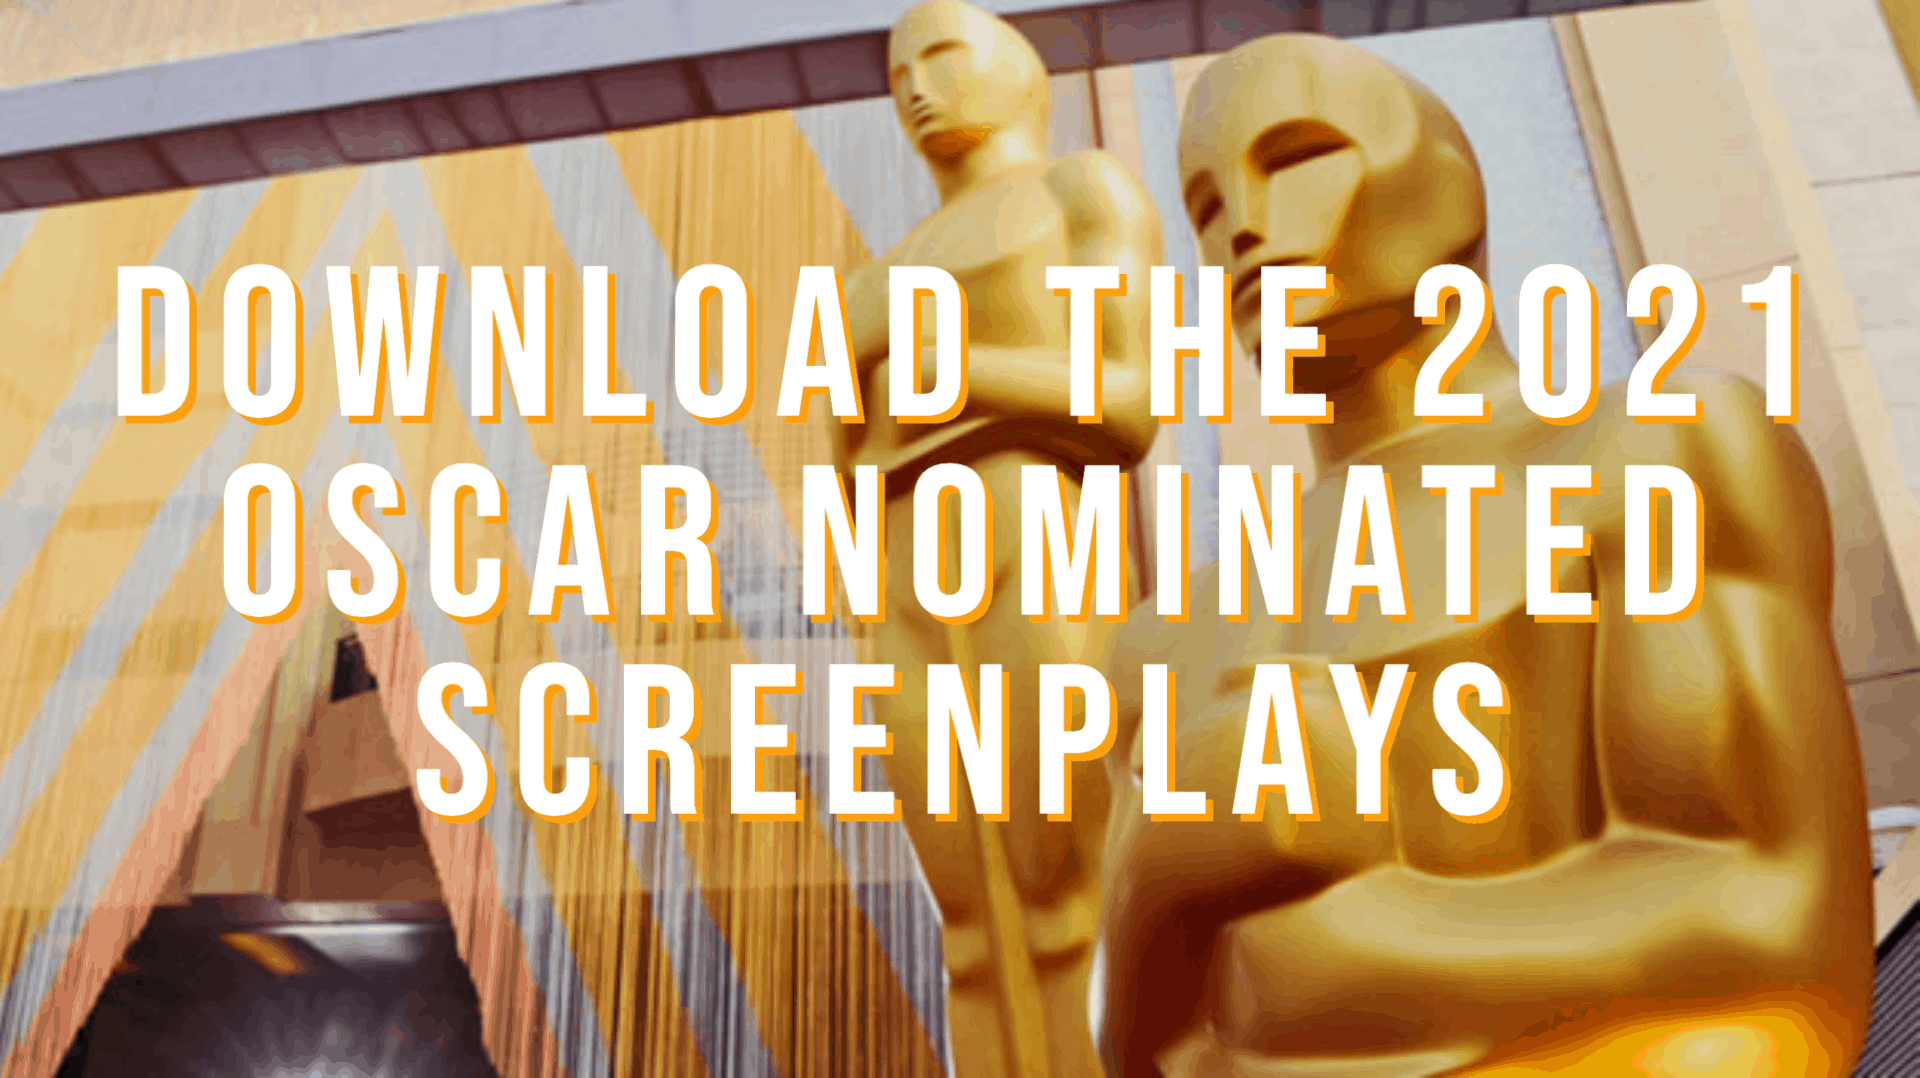 Download-Oscar-Nominated-Screenplays-2021-Scriptation